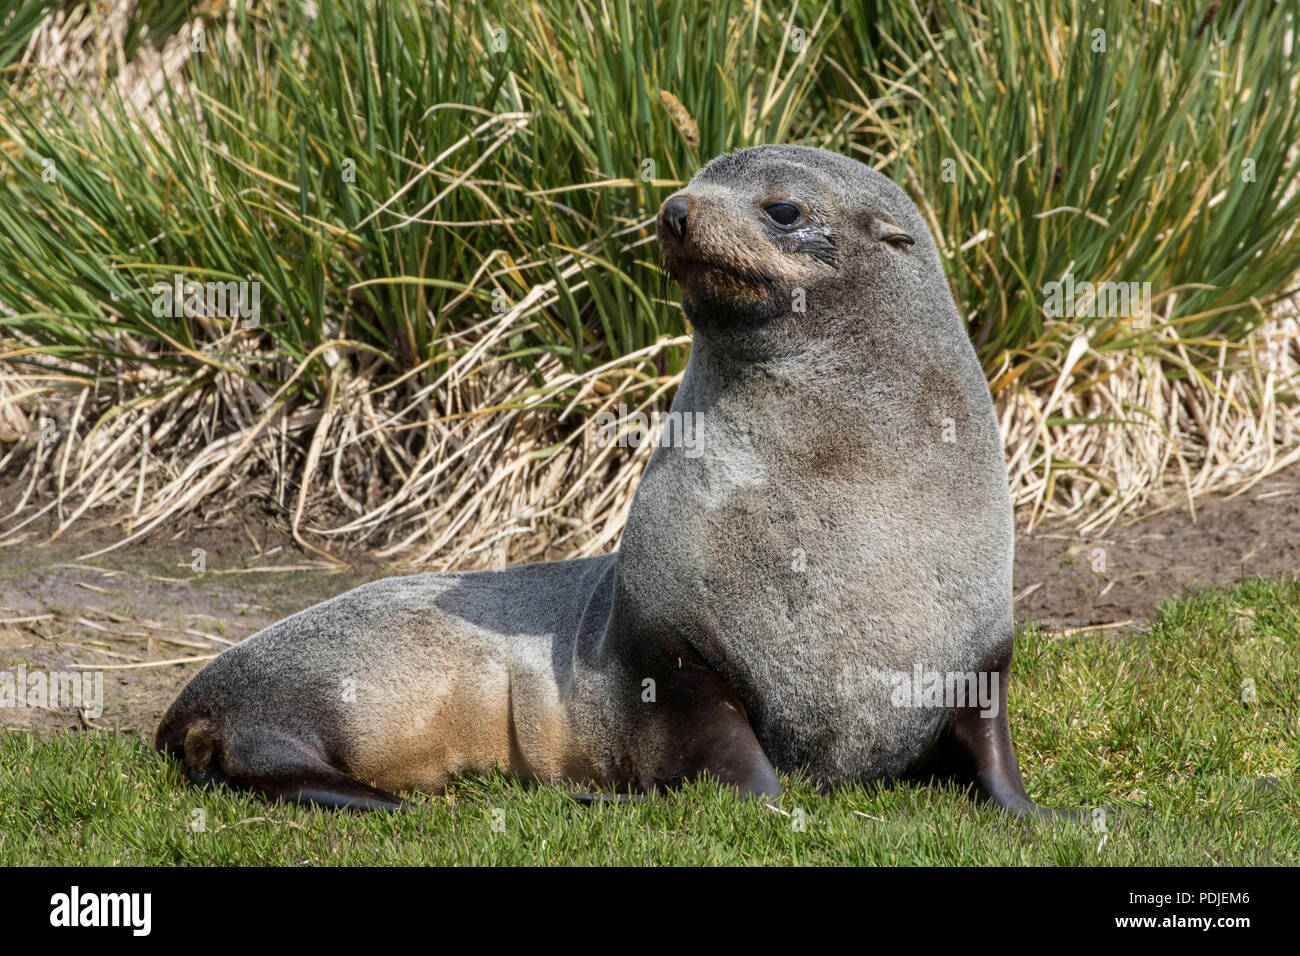 Southern fur seal on the south Georgia islands - Stock Image